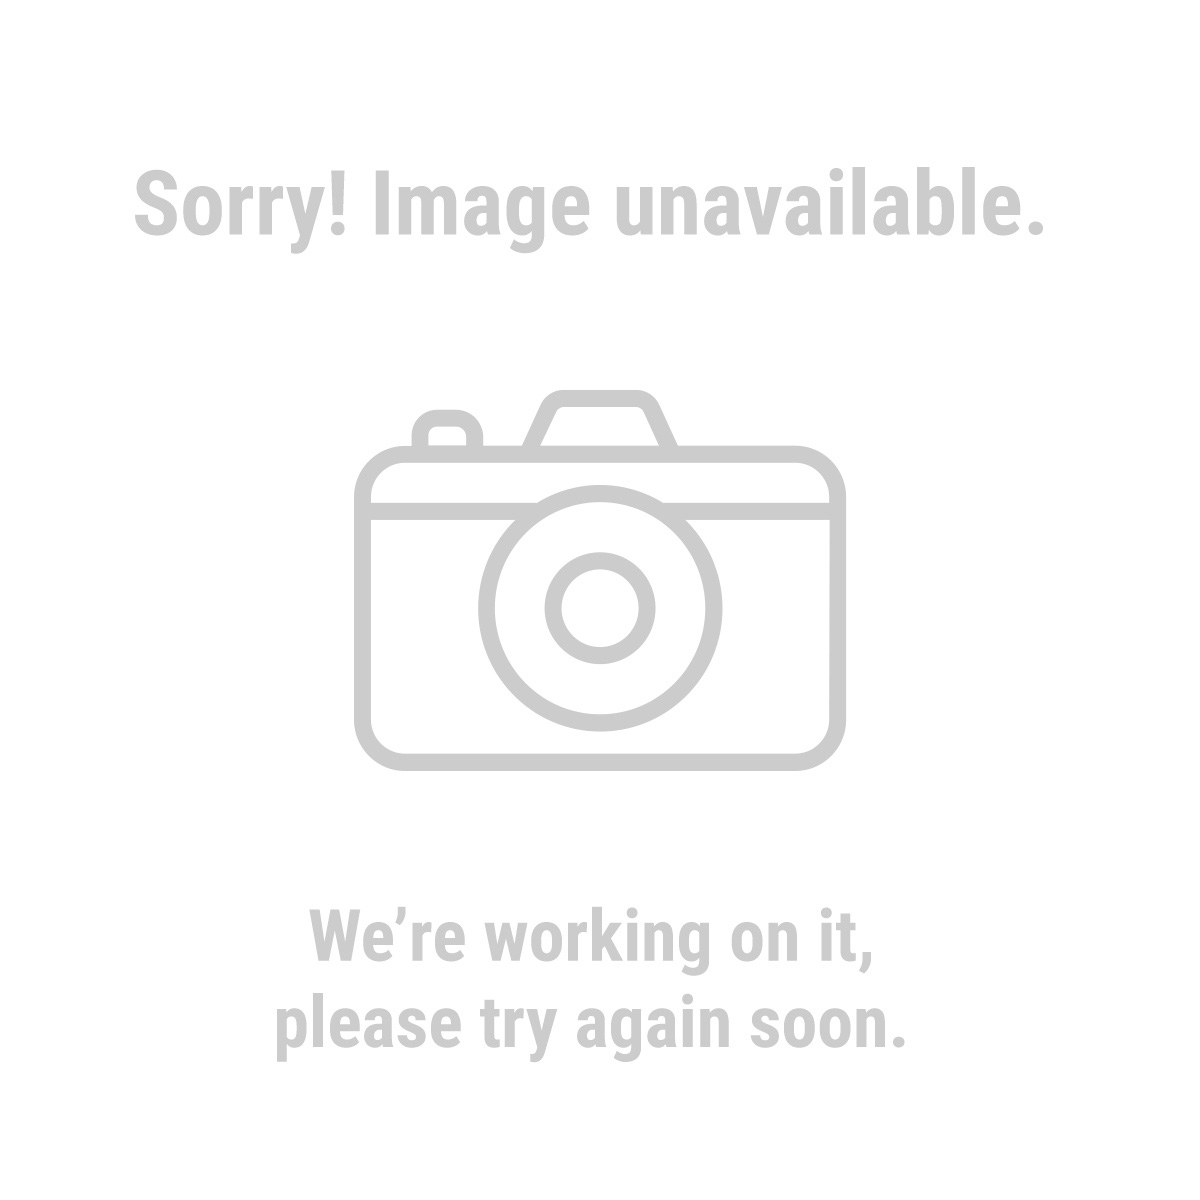 46087 Heavy Duty Creeper with Adjustable Headrest